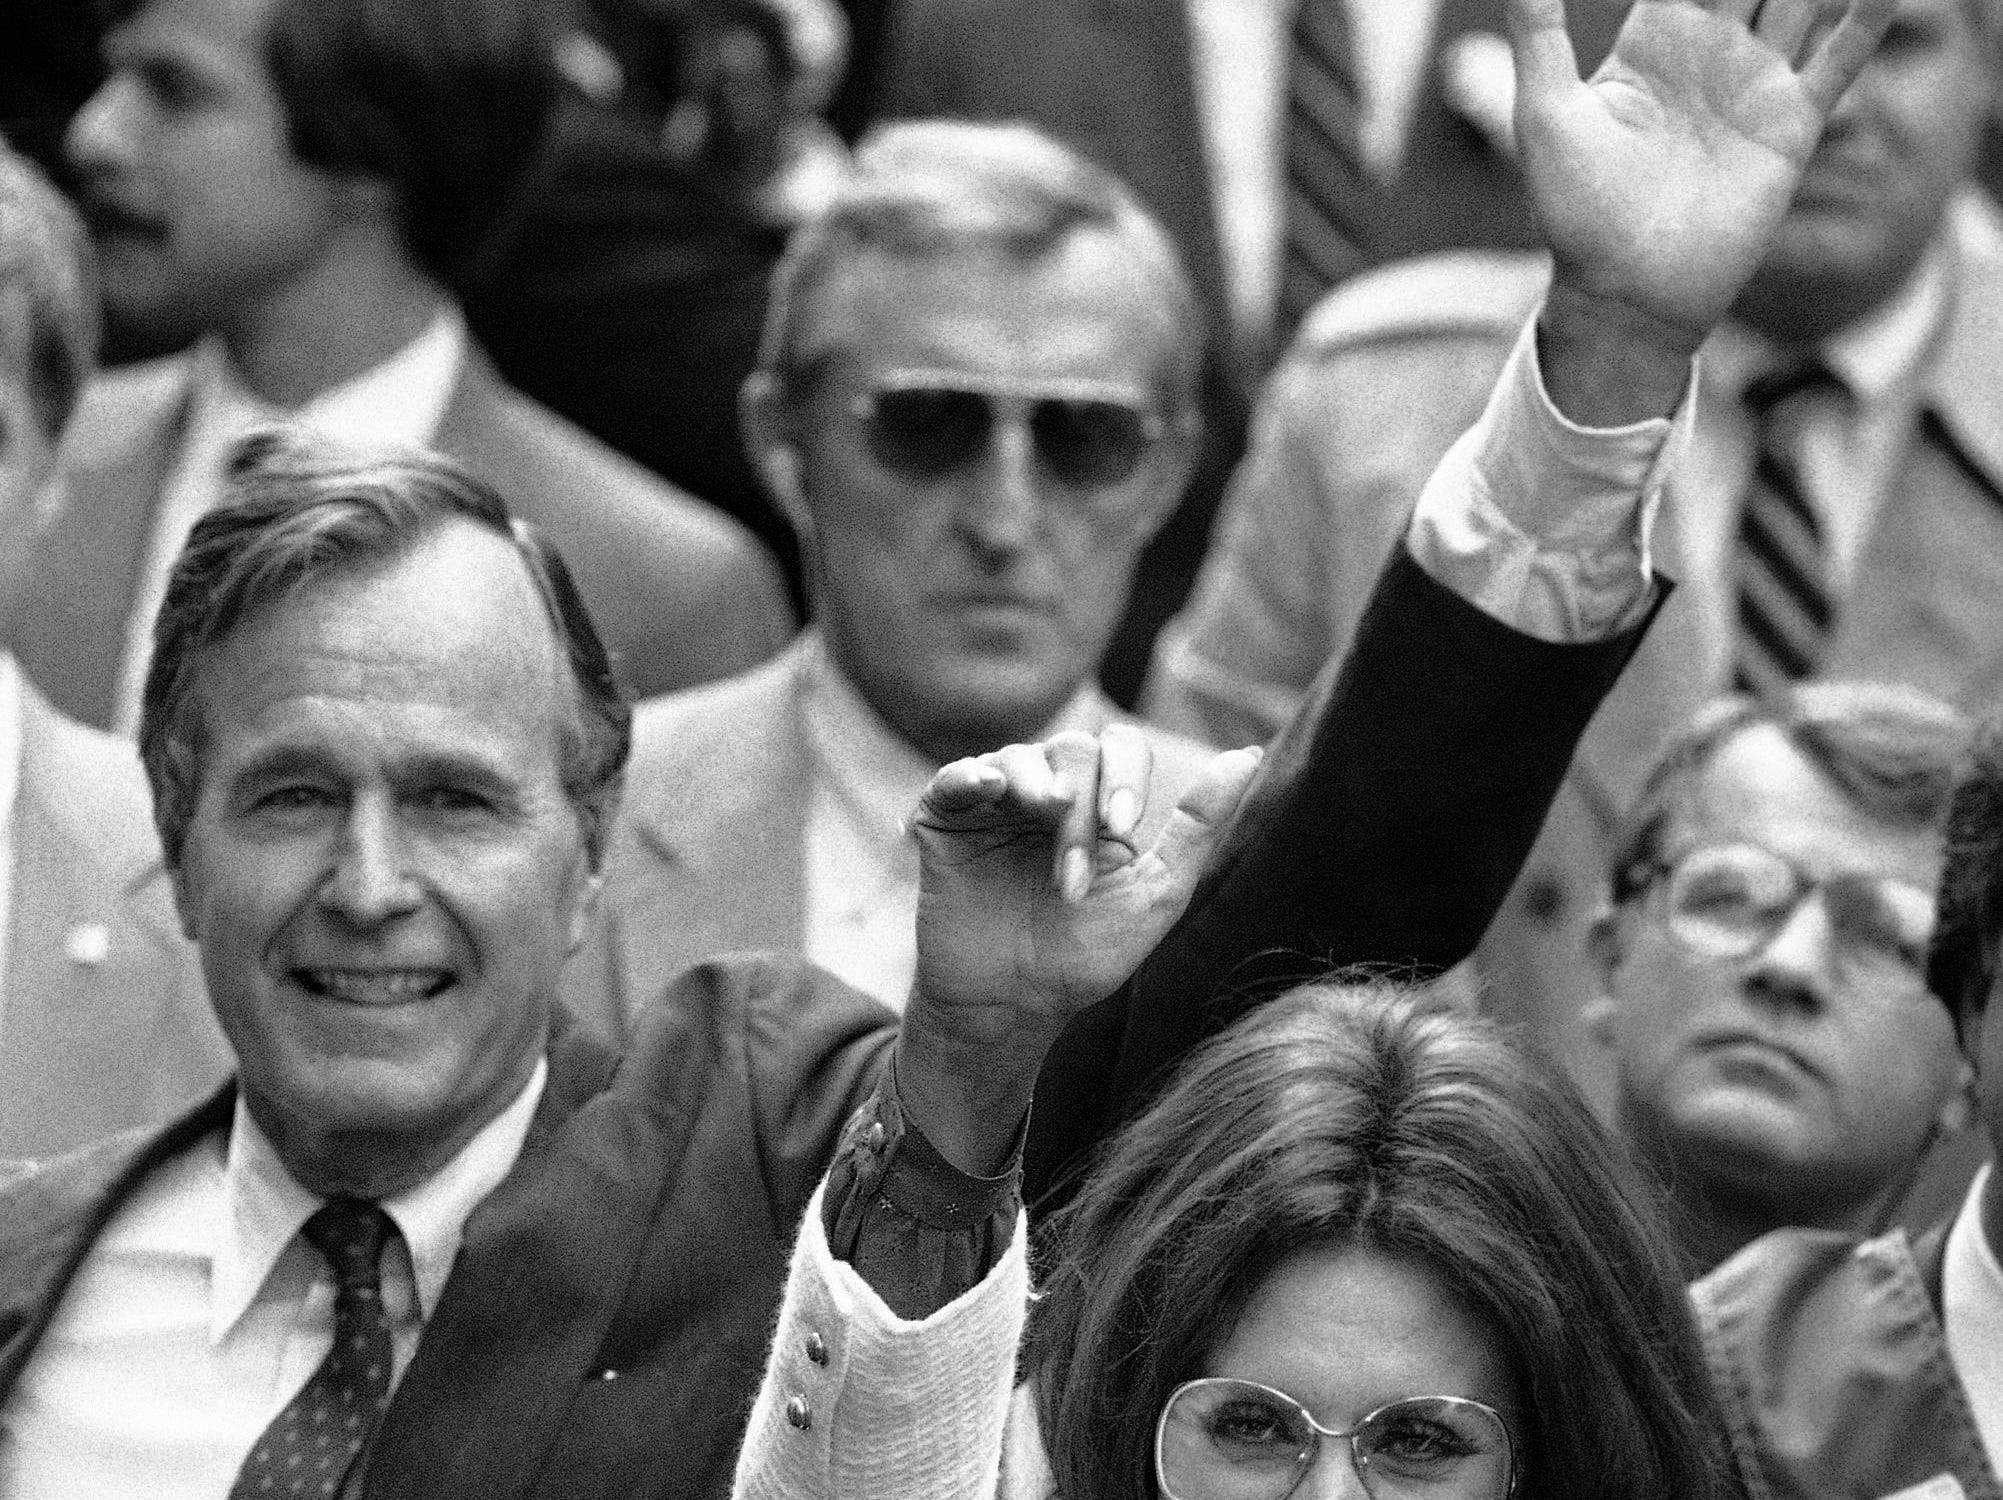 Vice President George Bush follows New York Columbus Day parade's Grand Marshall, actress Sophia Loren down New York's Fifth Avenue, Monday, Oct. 9, 1984 during parade festivities. (AP Photo/Thumma)